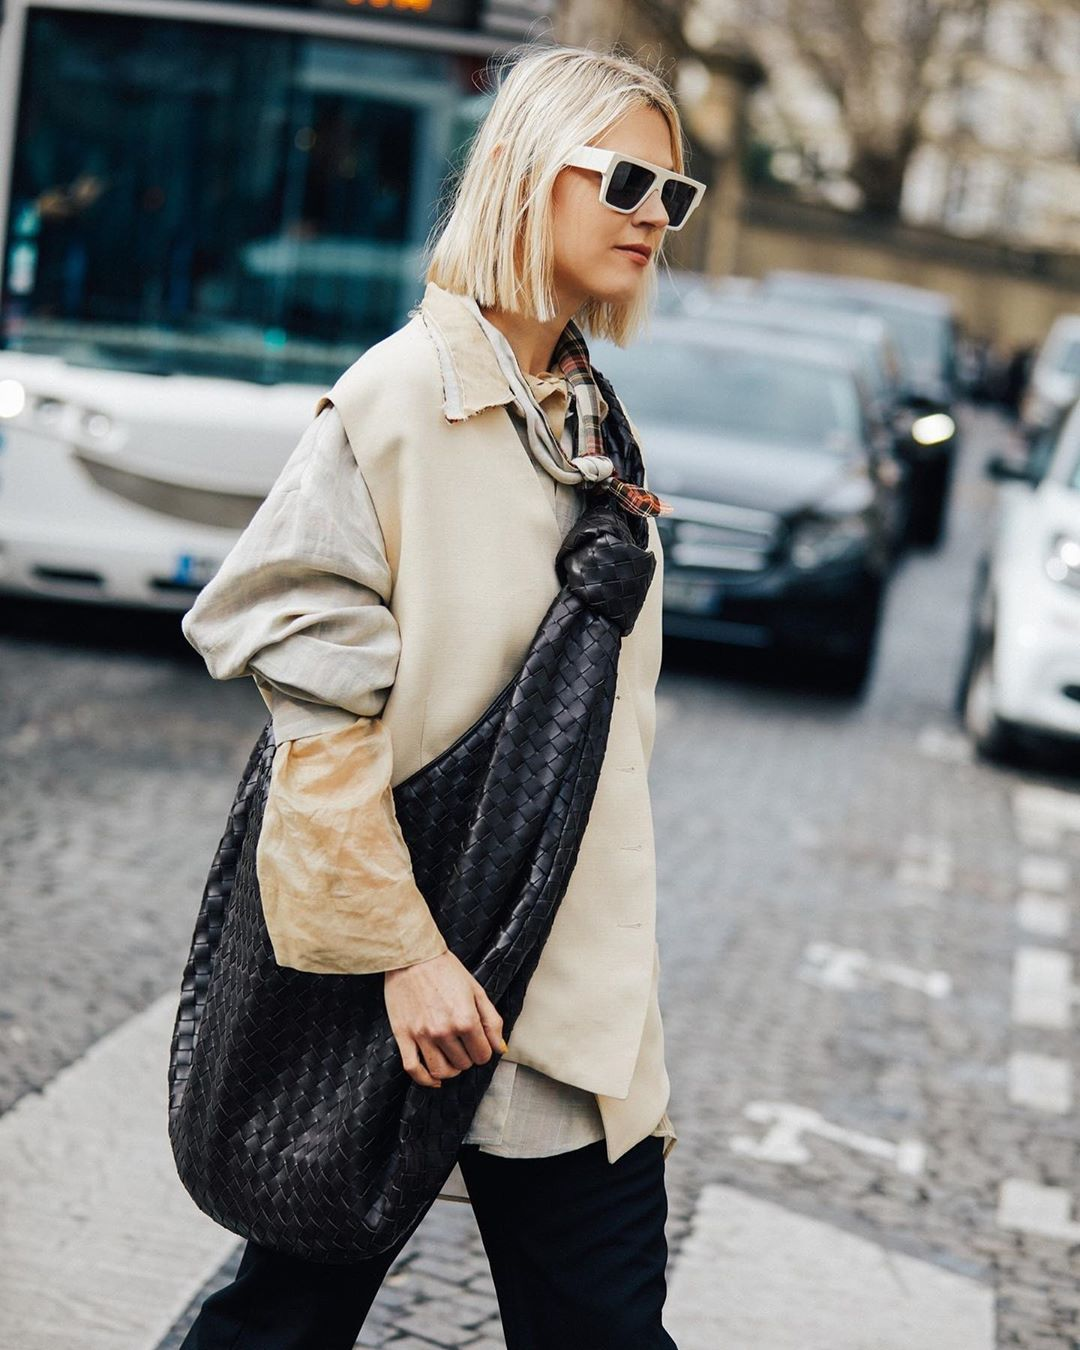 bottega-veneta-jodie-knotted-intrecciato-leather-shoulder-bag-linda-tol-instagram